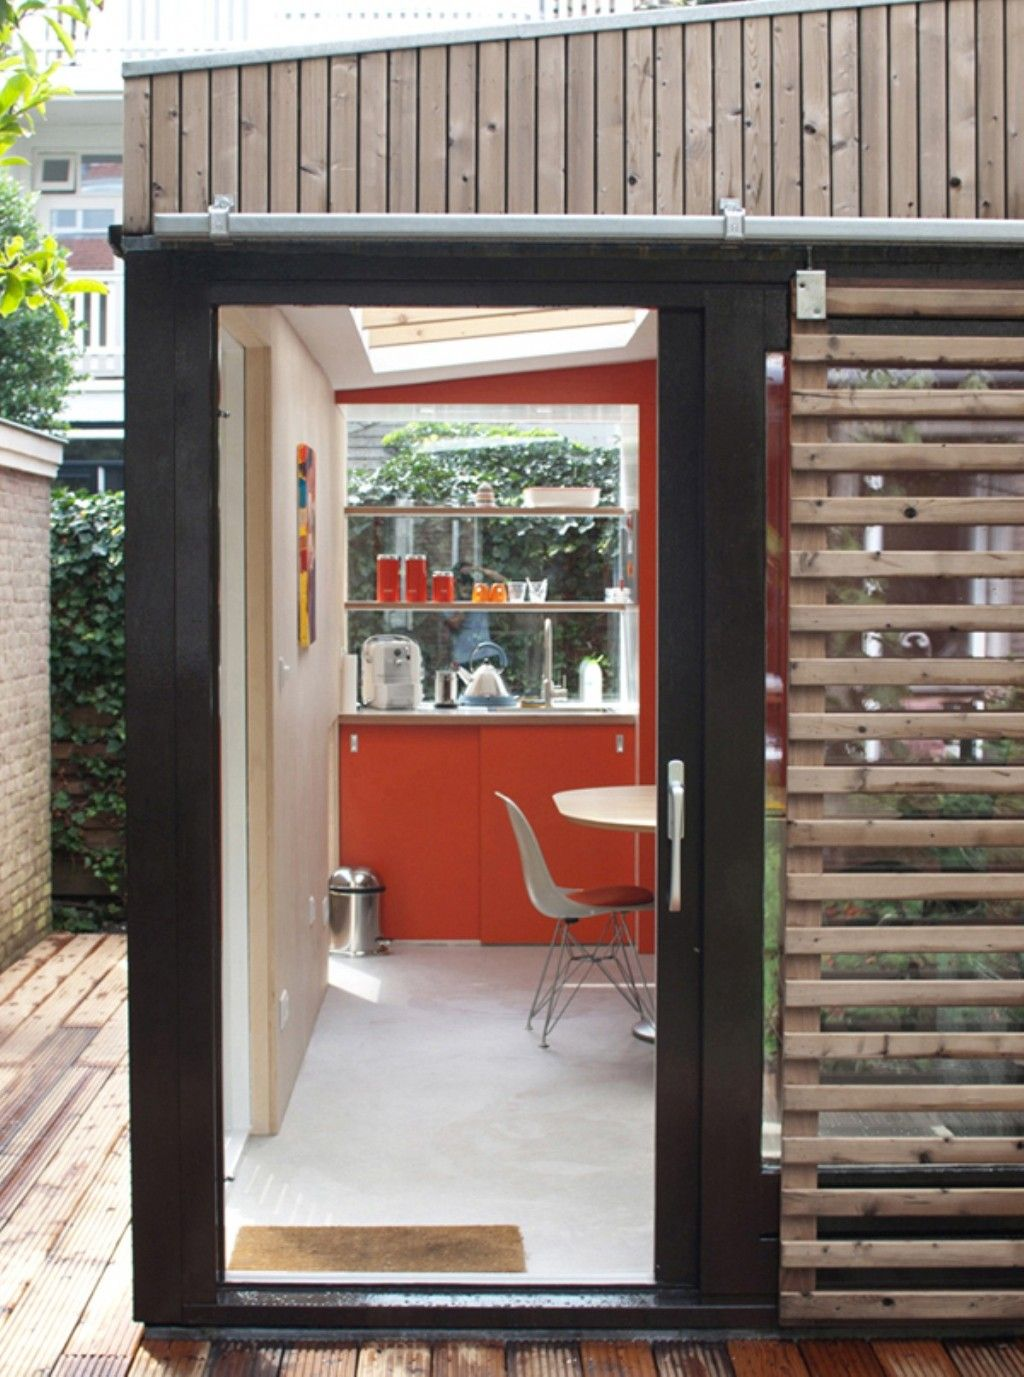 Home Office Design Ideas For Small Spaces With Wooden Walls And ...